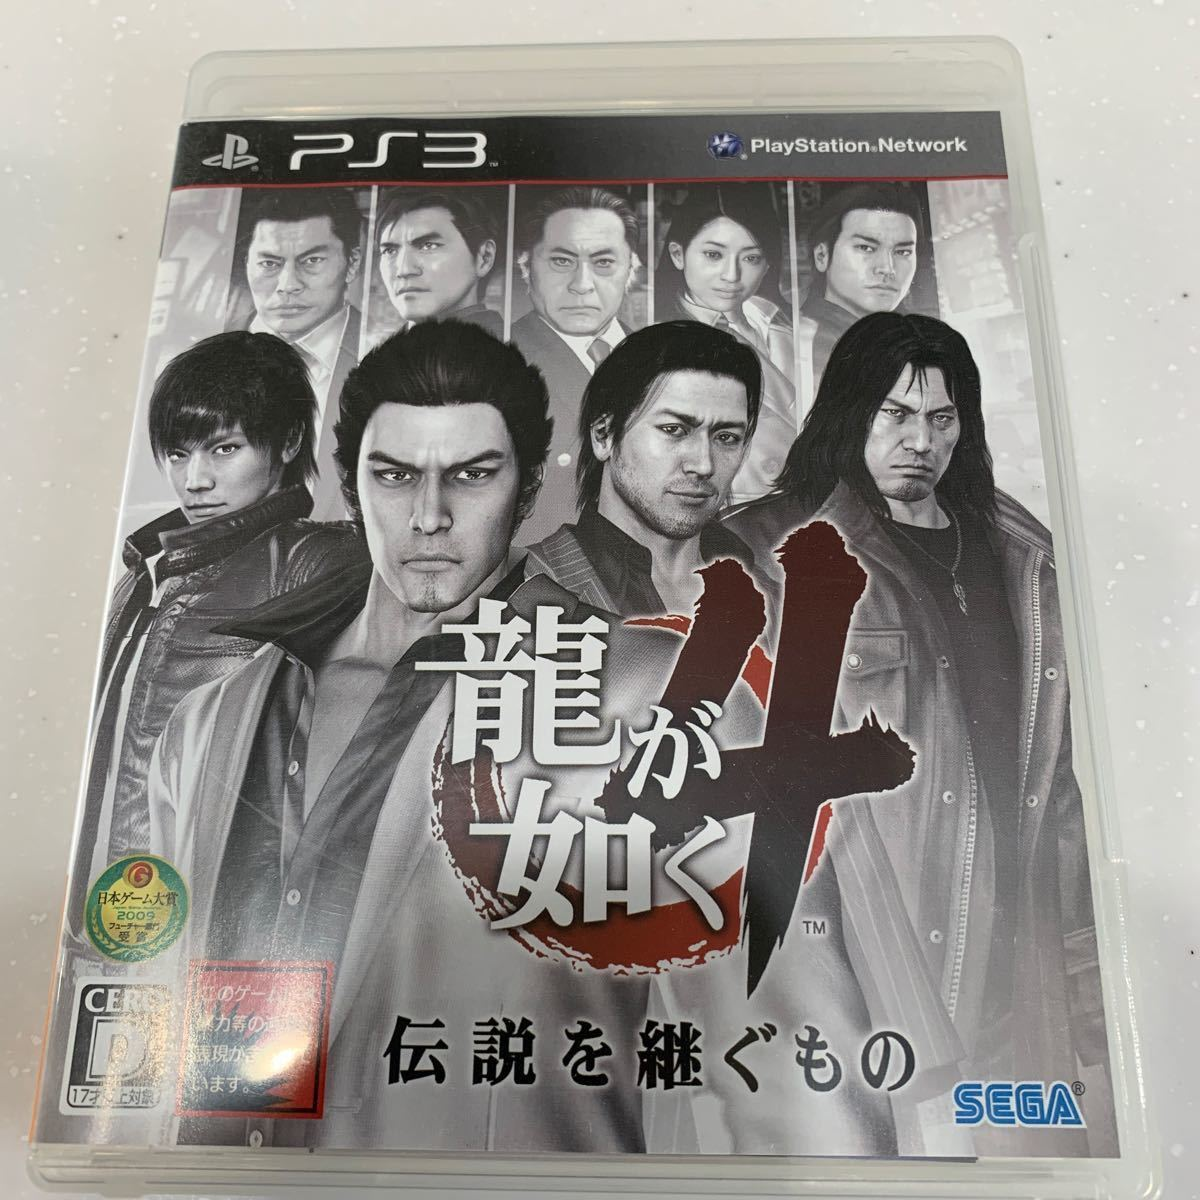 PS3 ソフト 龍がか如く4.5.OF THE END3本&4指南書セット